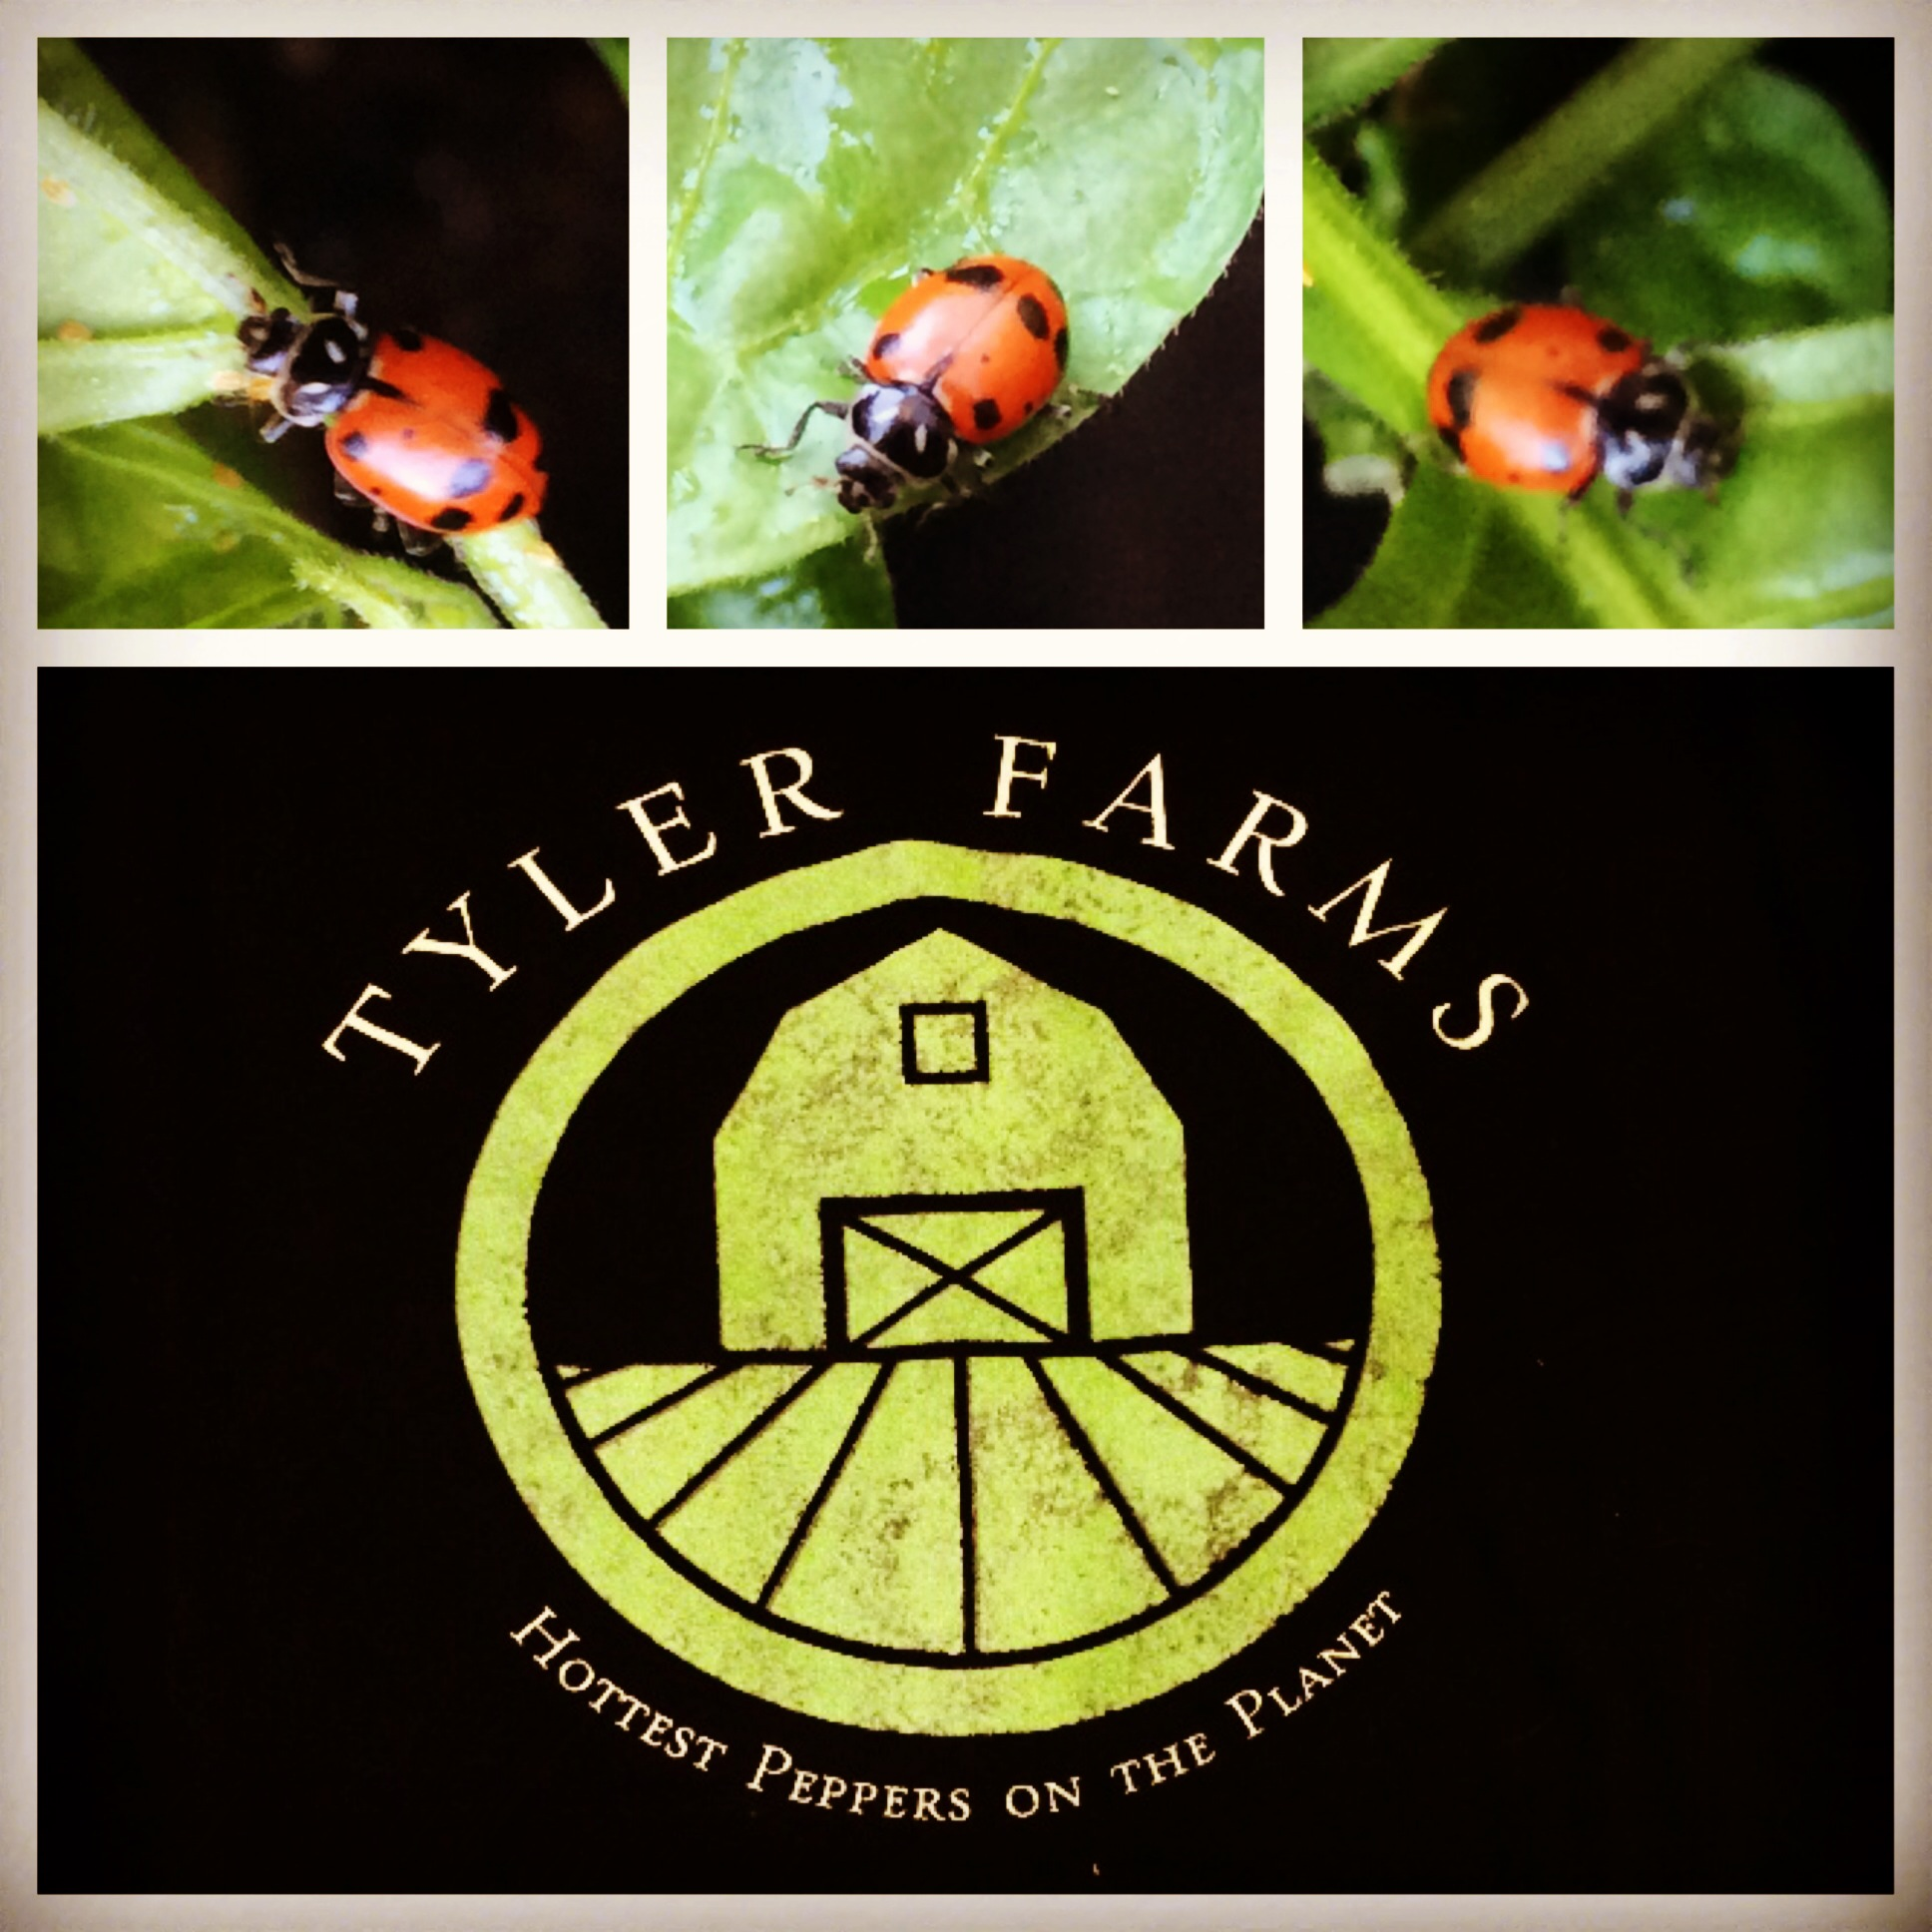 tyler-farms-ladybugs.jpg